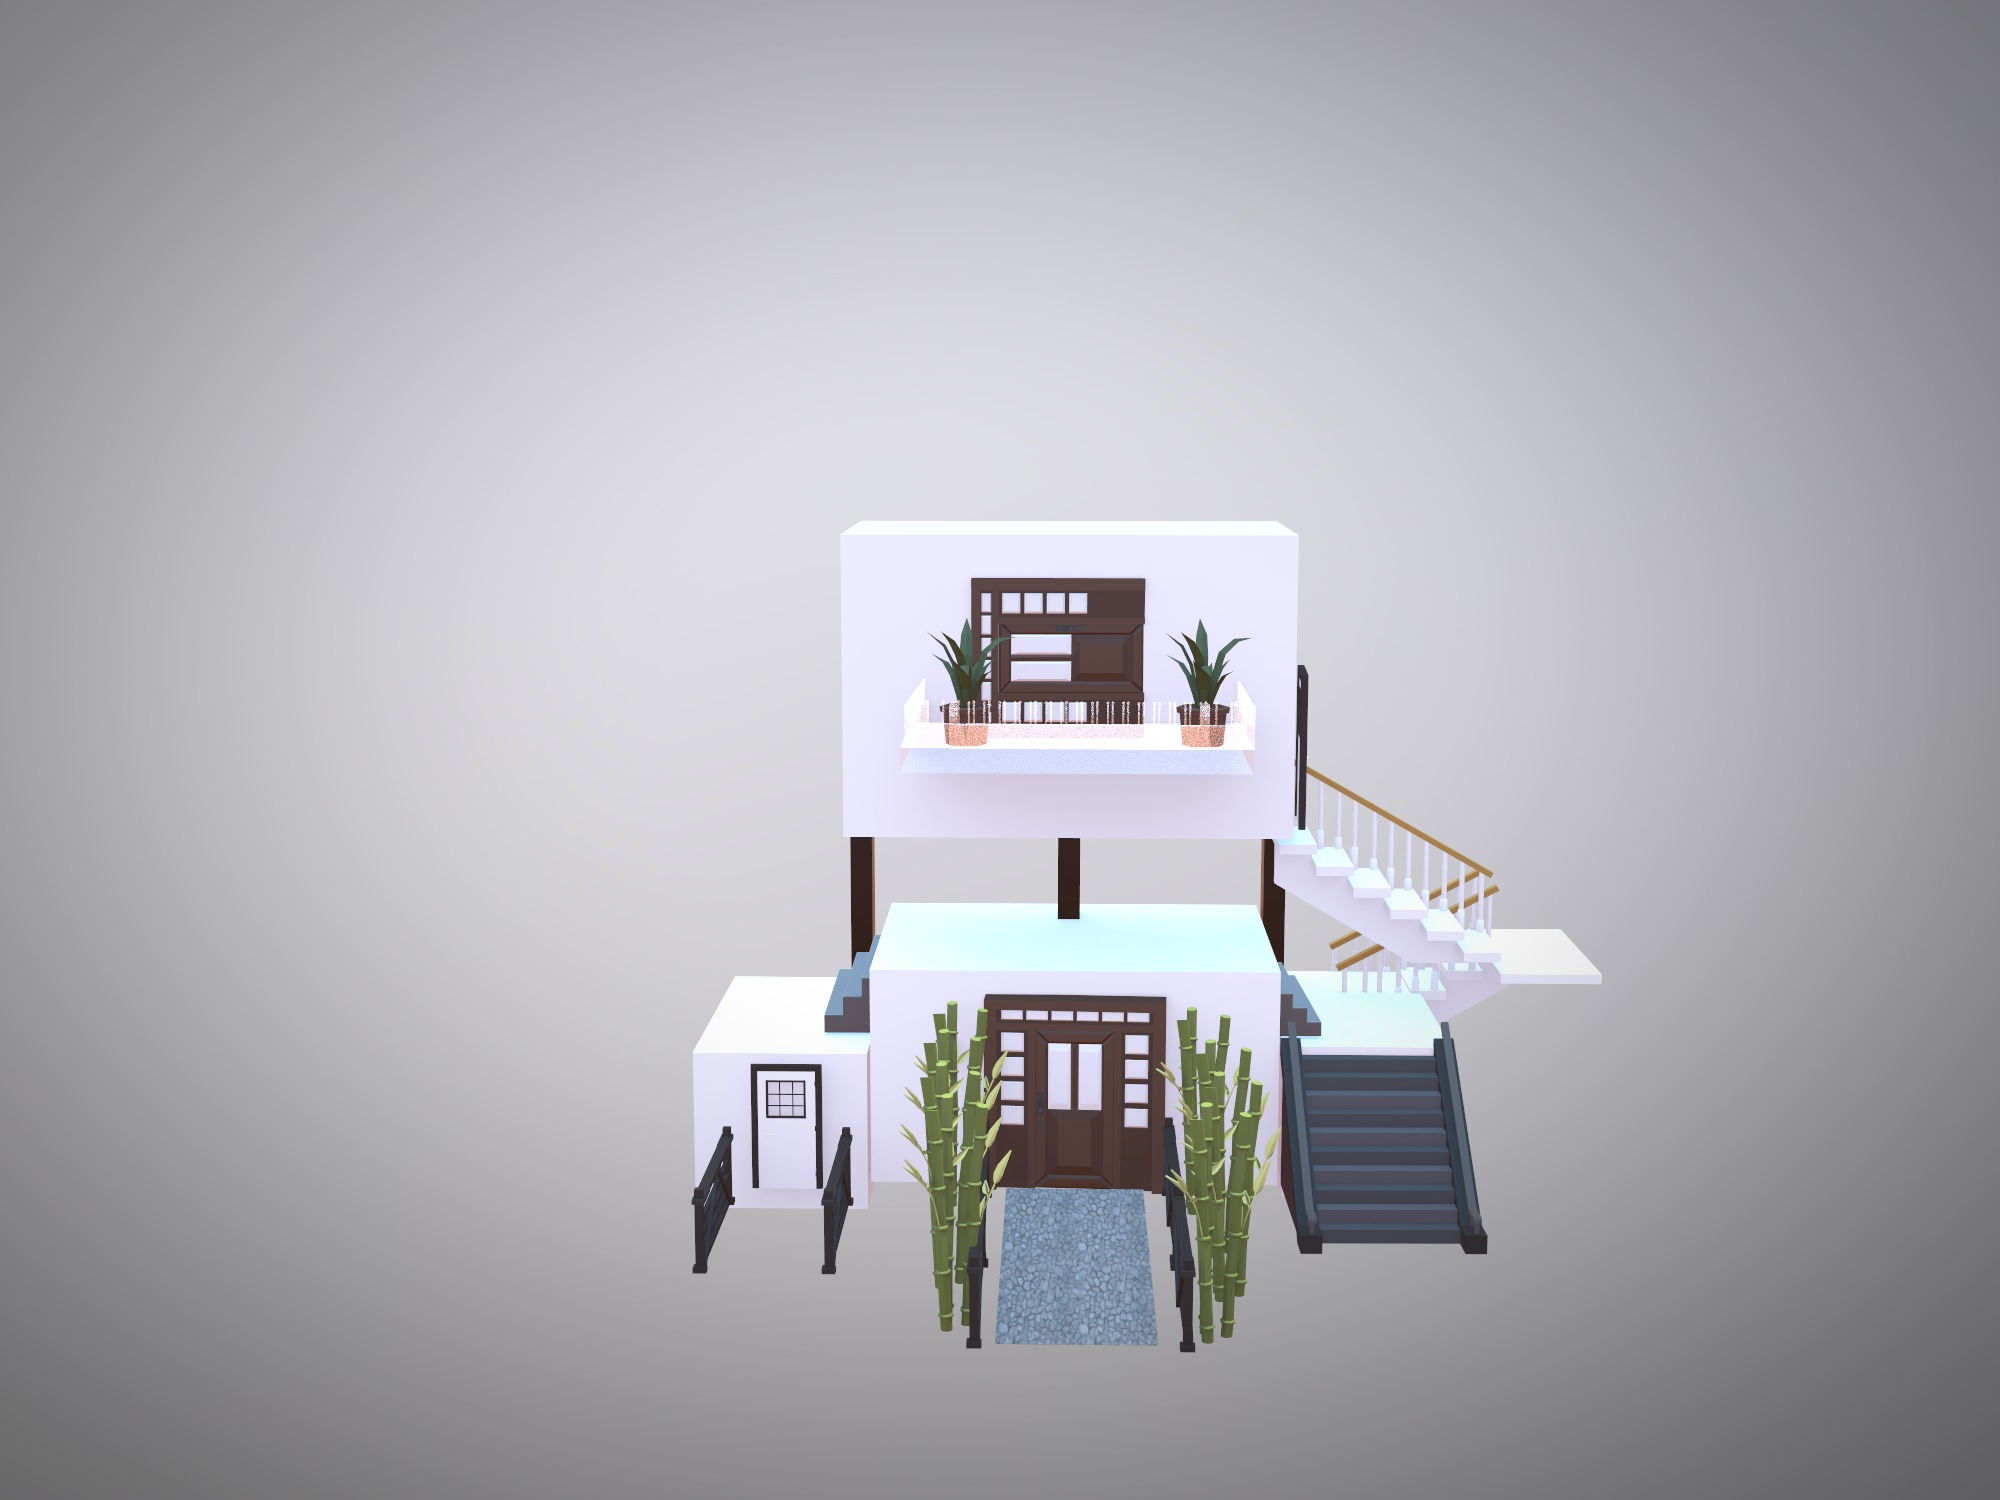 DREAM HOUSE? - 3D design by Melody on Feb 22, 2019